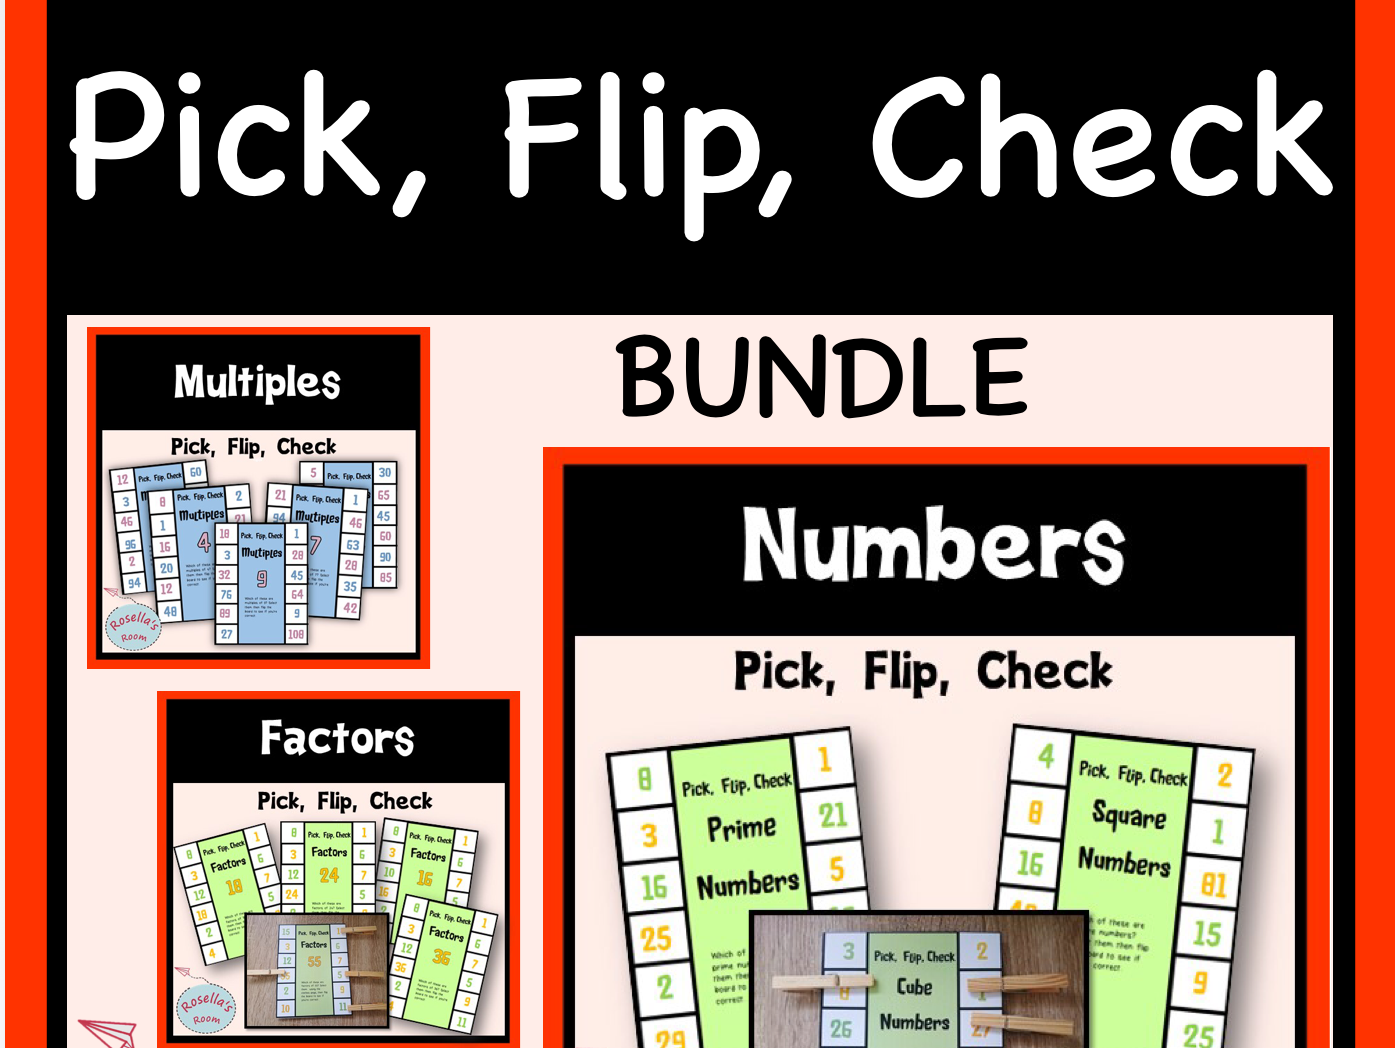 Pick, Flip, Check Numbers Bundle